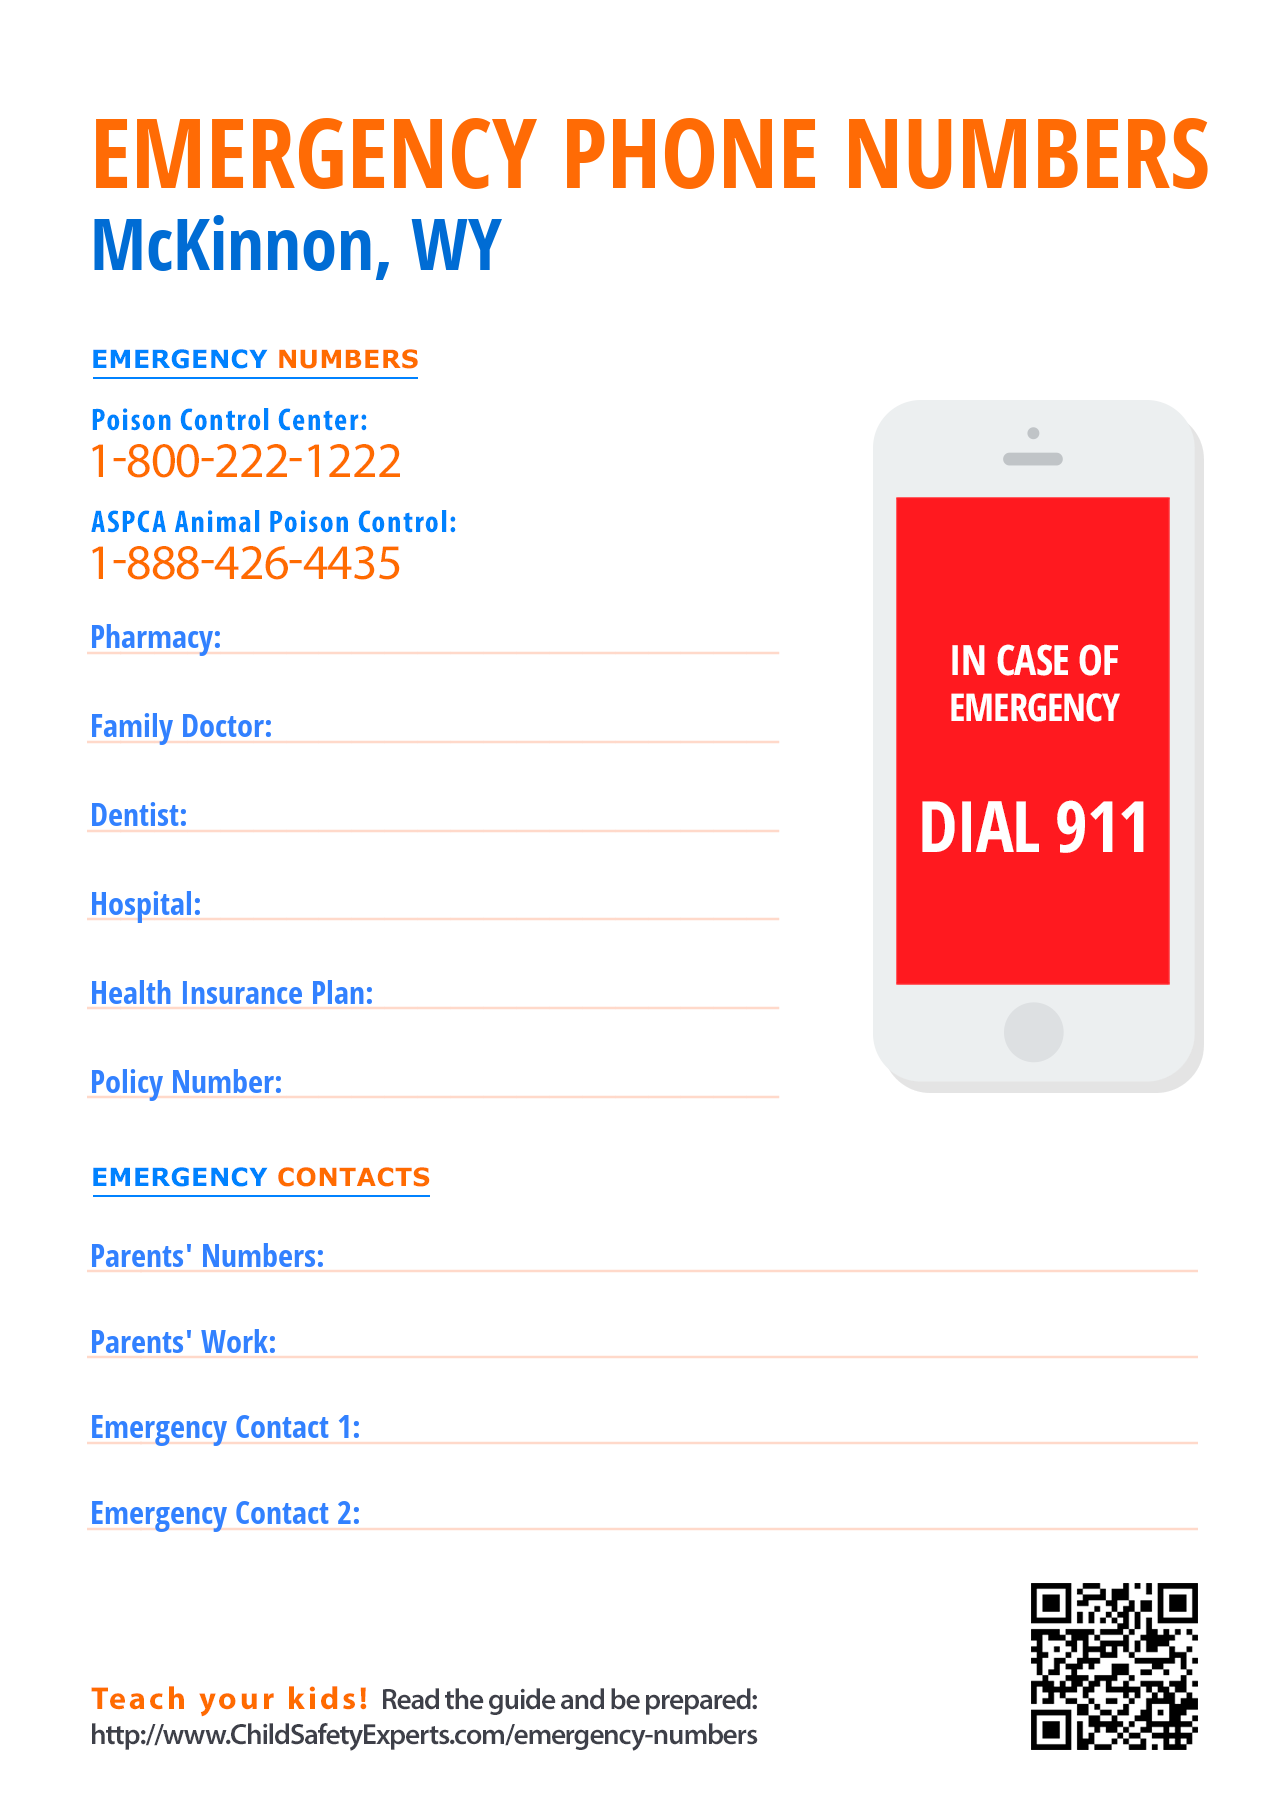 Important emergency phone numbers in McKinnon, Wyoming